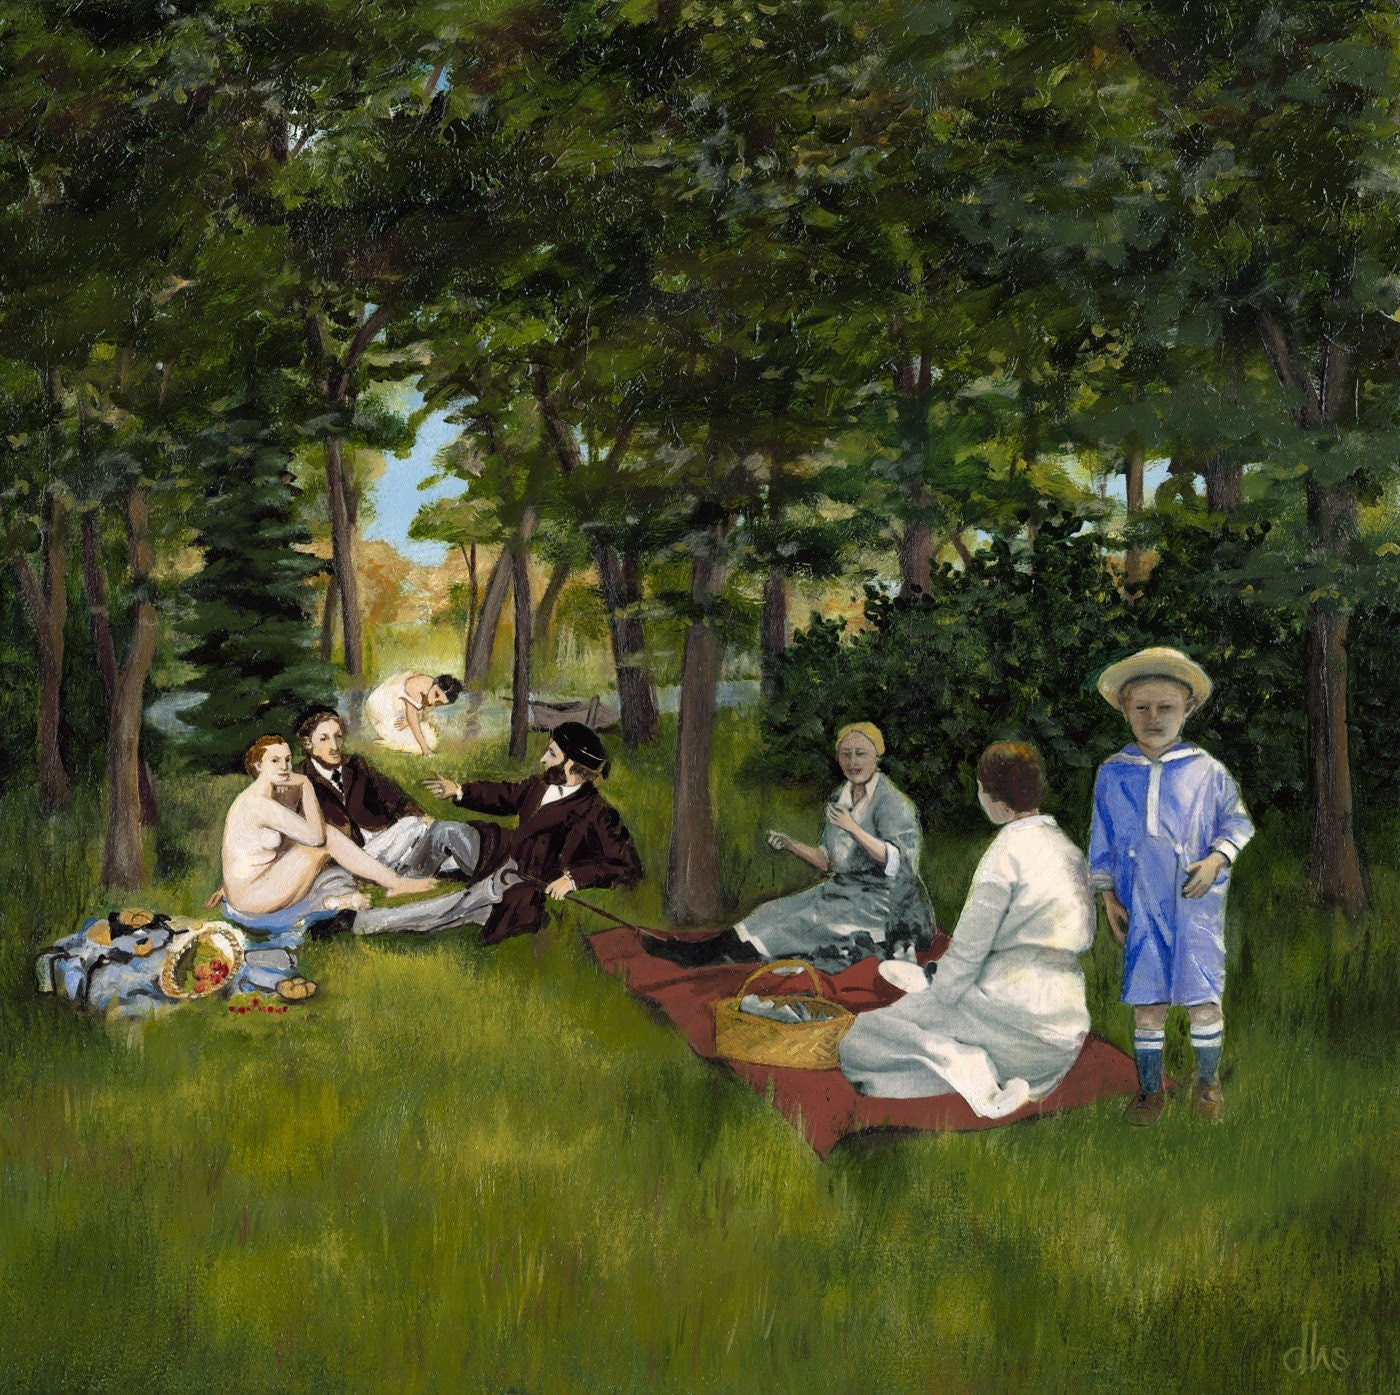 Original OIL Painting, Manet, Dejeuner dur l'herbe, green, forest, Summer Picnic, 14 x 14 on wood panel